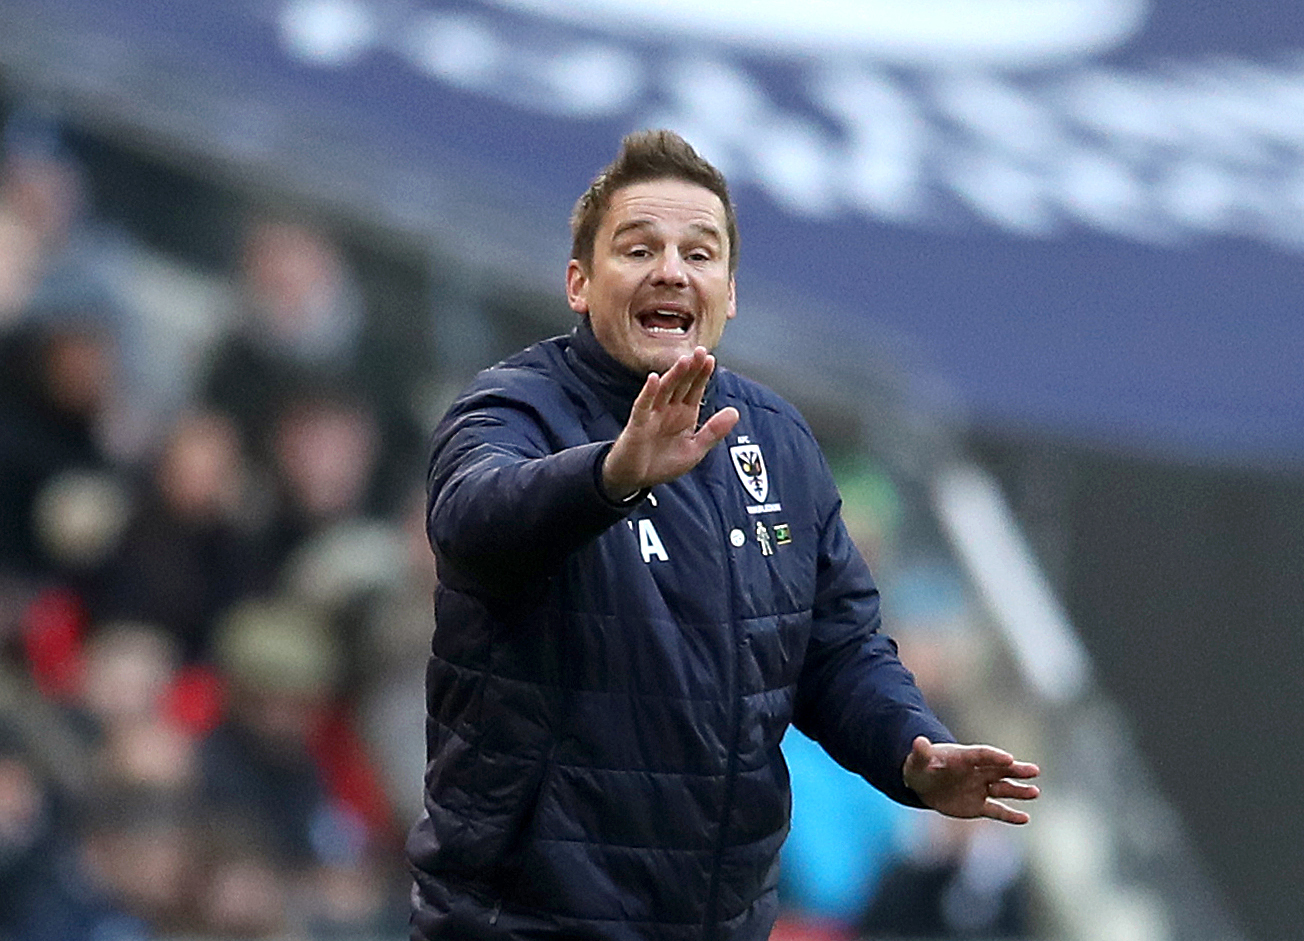 AFC Wimbledon manager Neal Ardley. Photo: Adam Davy/PA Wire